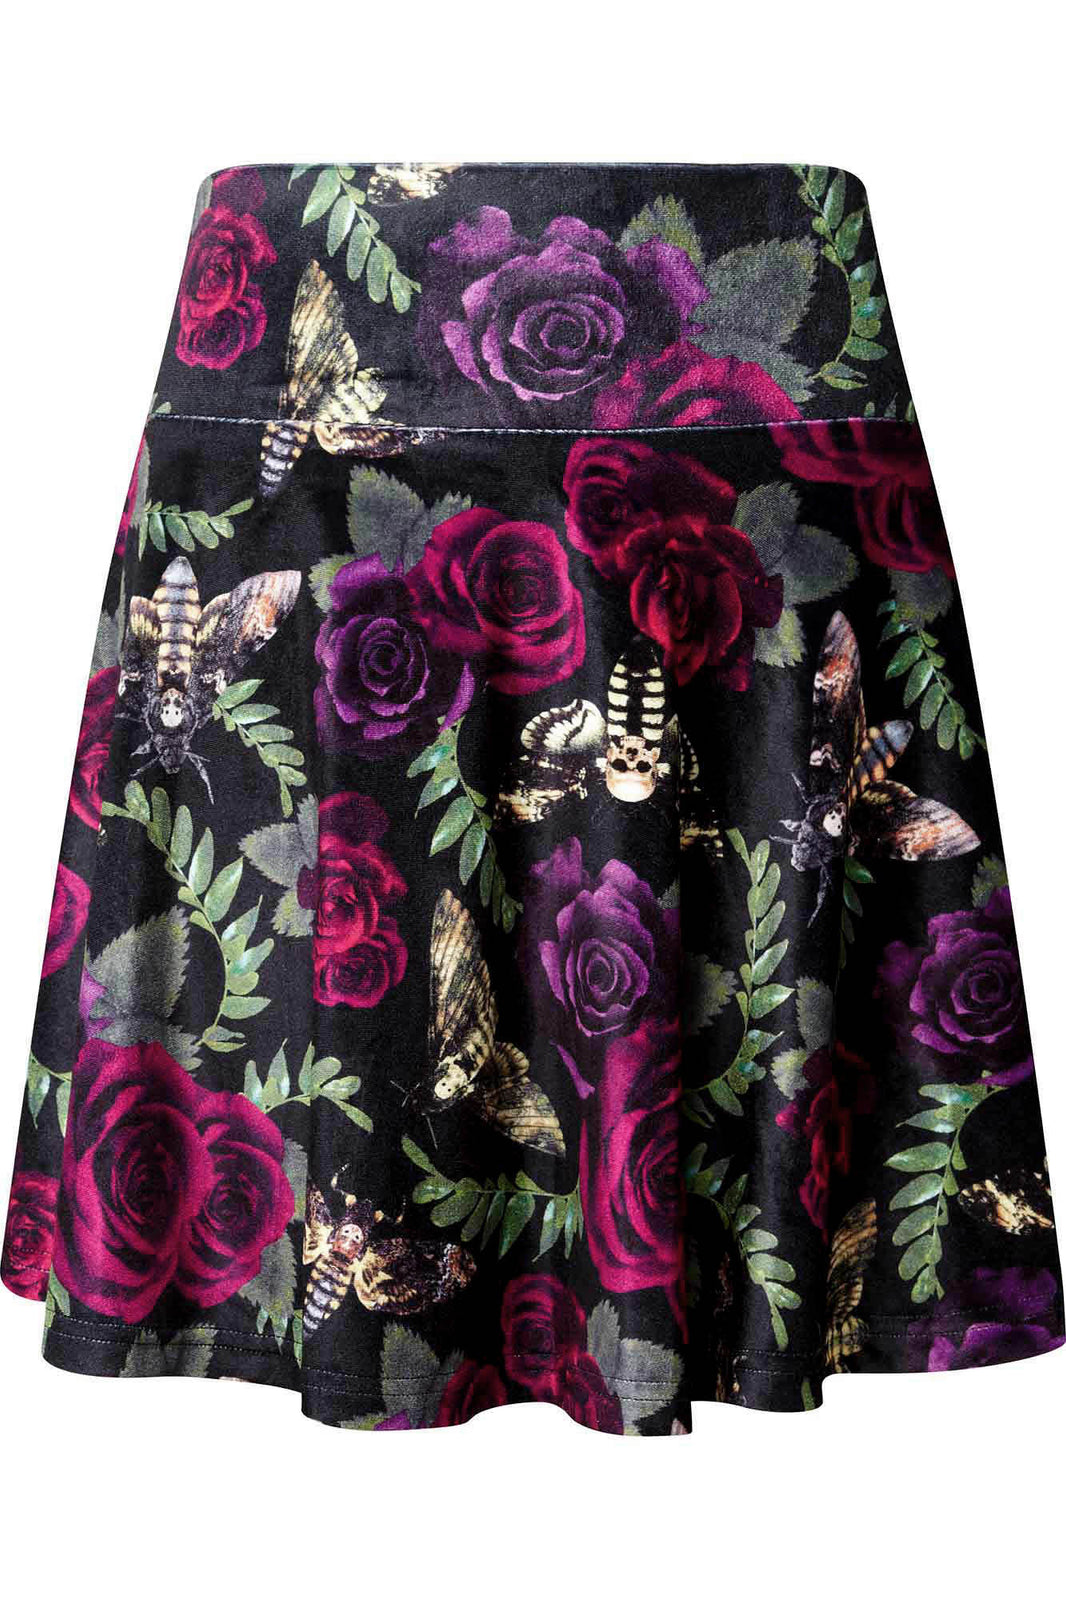 Sabrina Nightlife Skater Skirt [B]